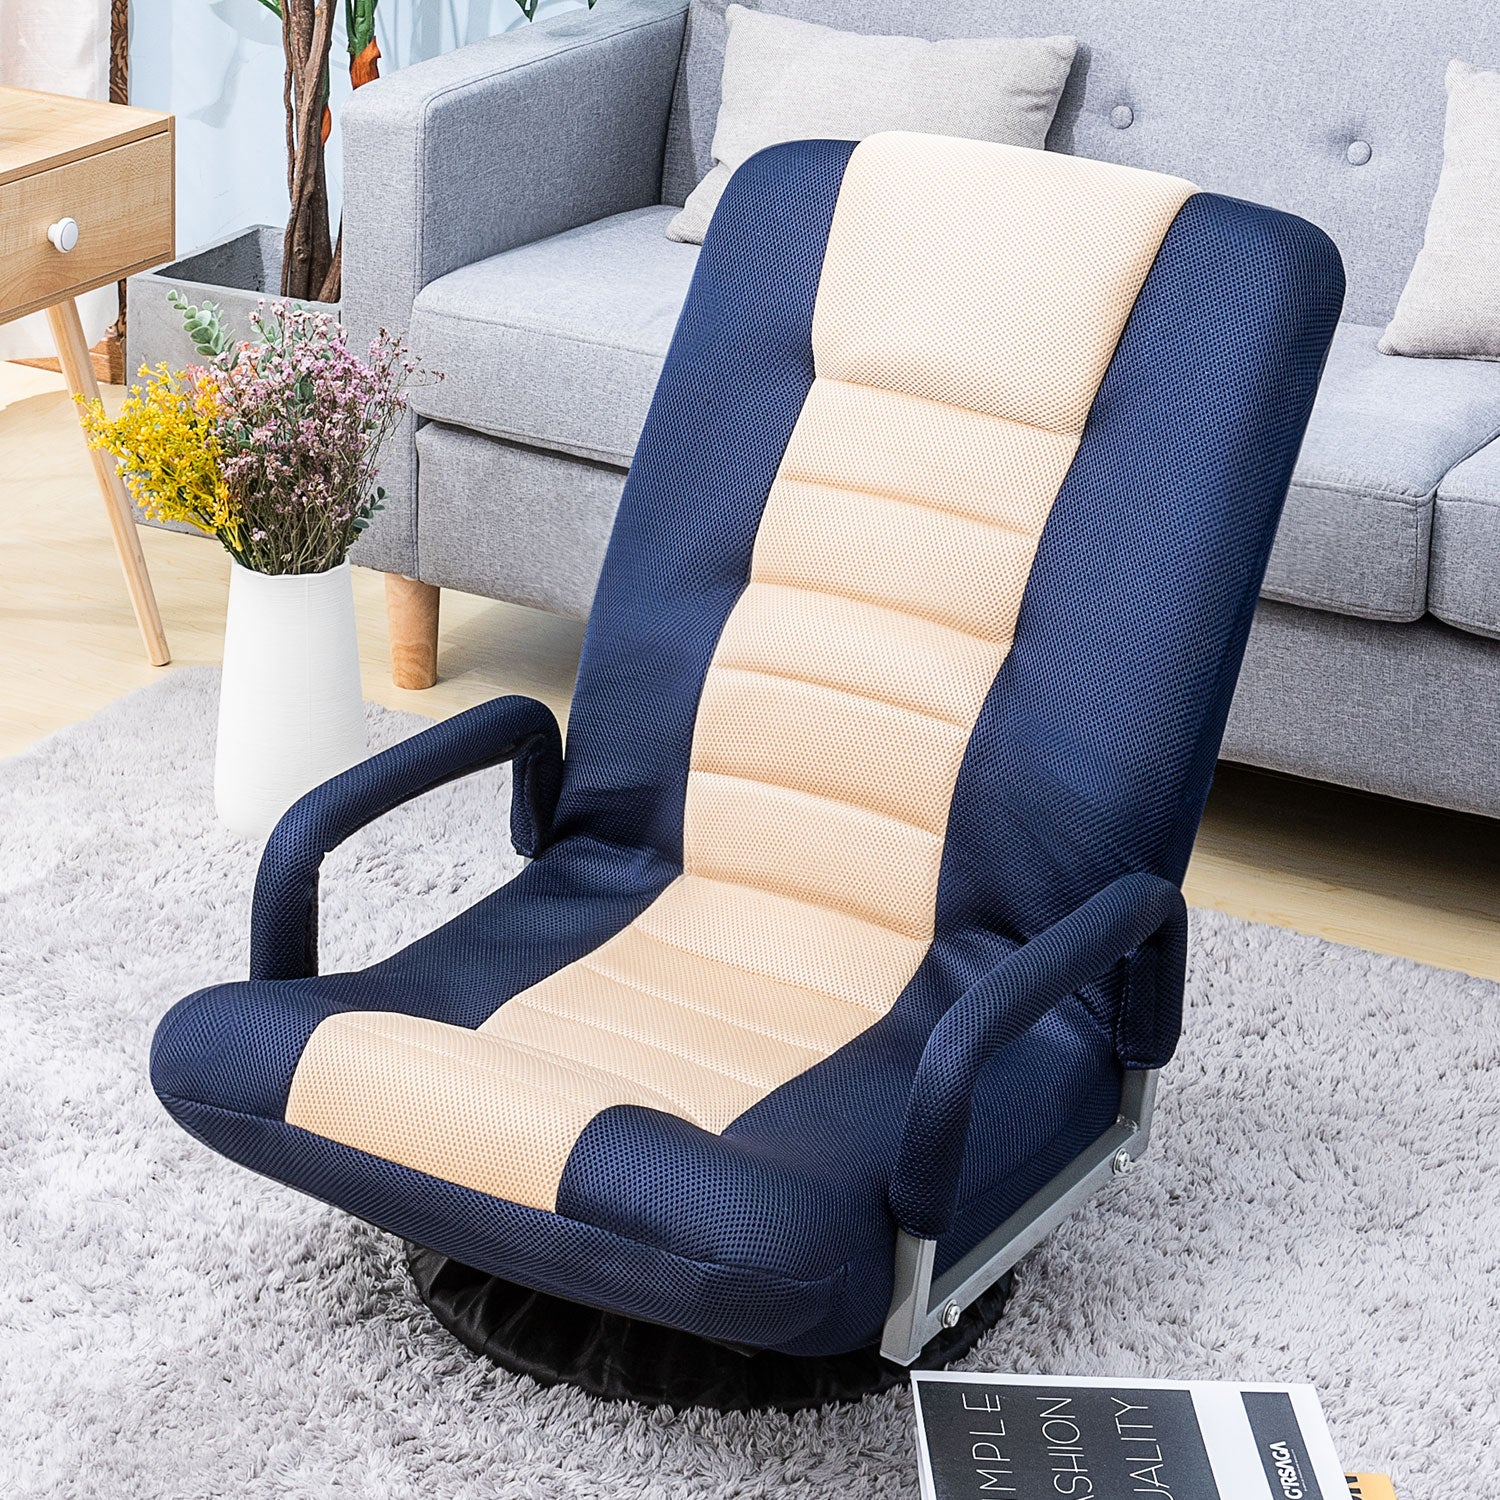 Bisque Swivel Video Rocker Gaming Chair Adjustable 7-Position Floor Chair Folding Sofa Lounger BH037464